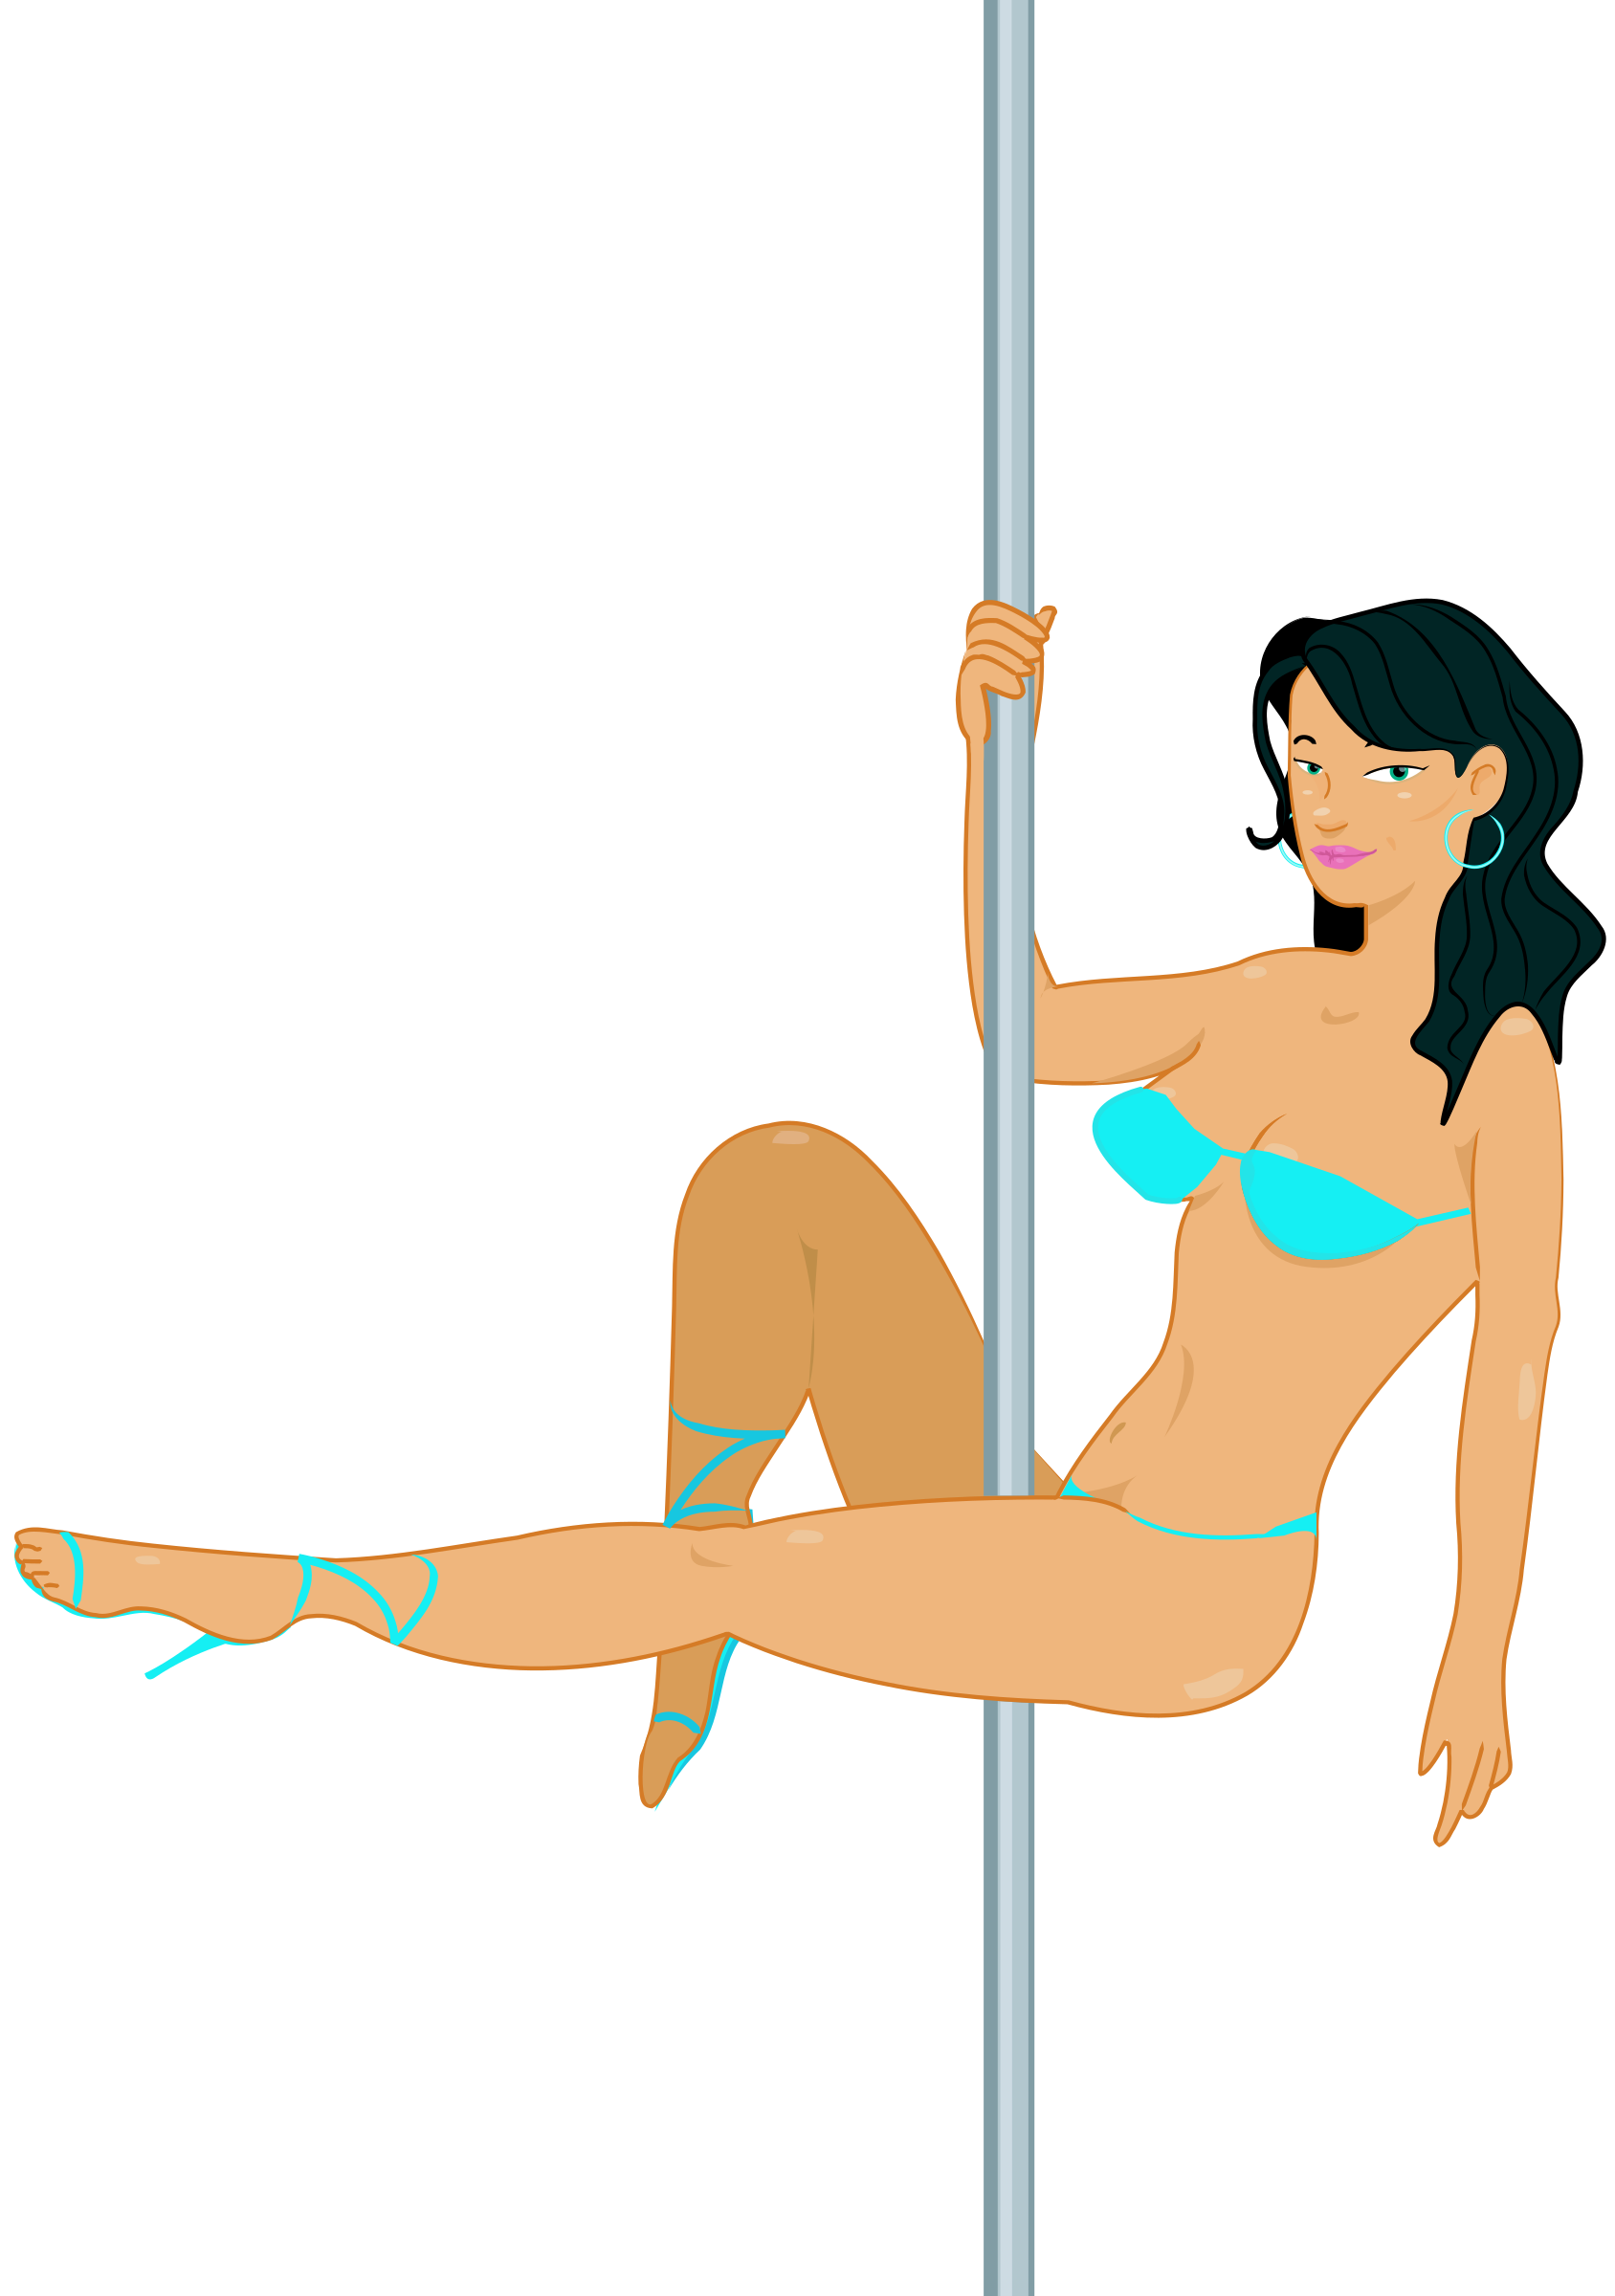 Action in Nude stripper